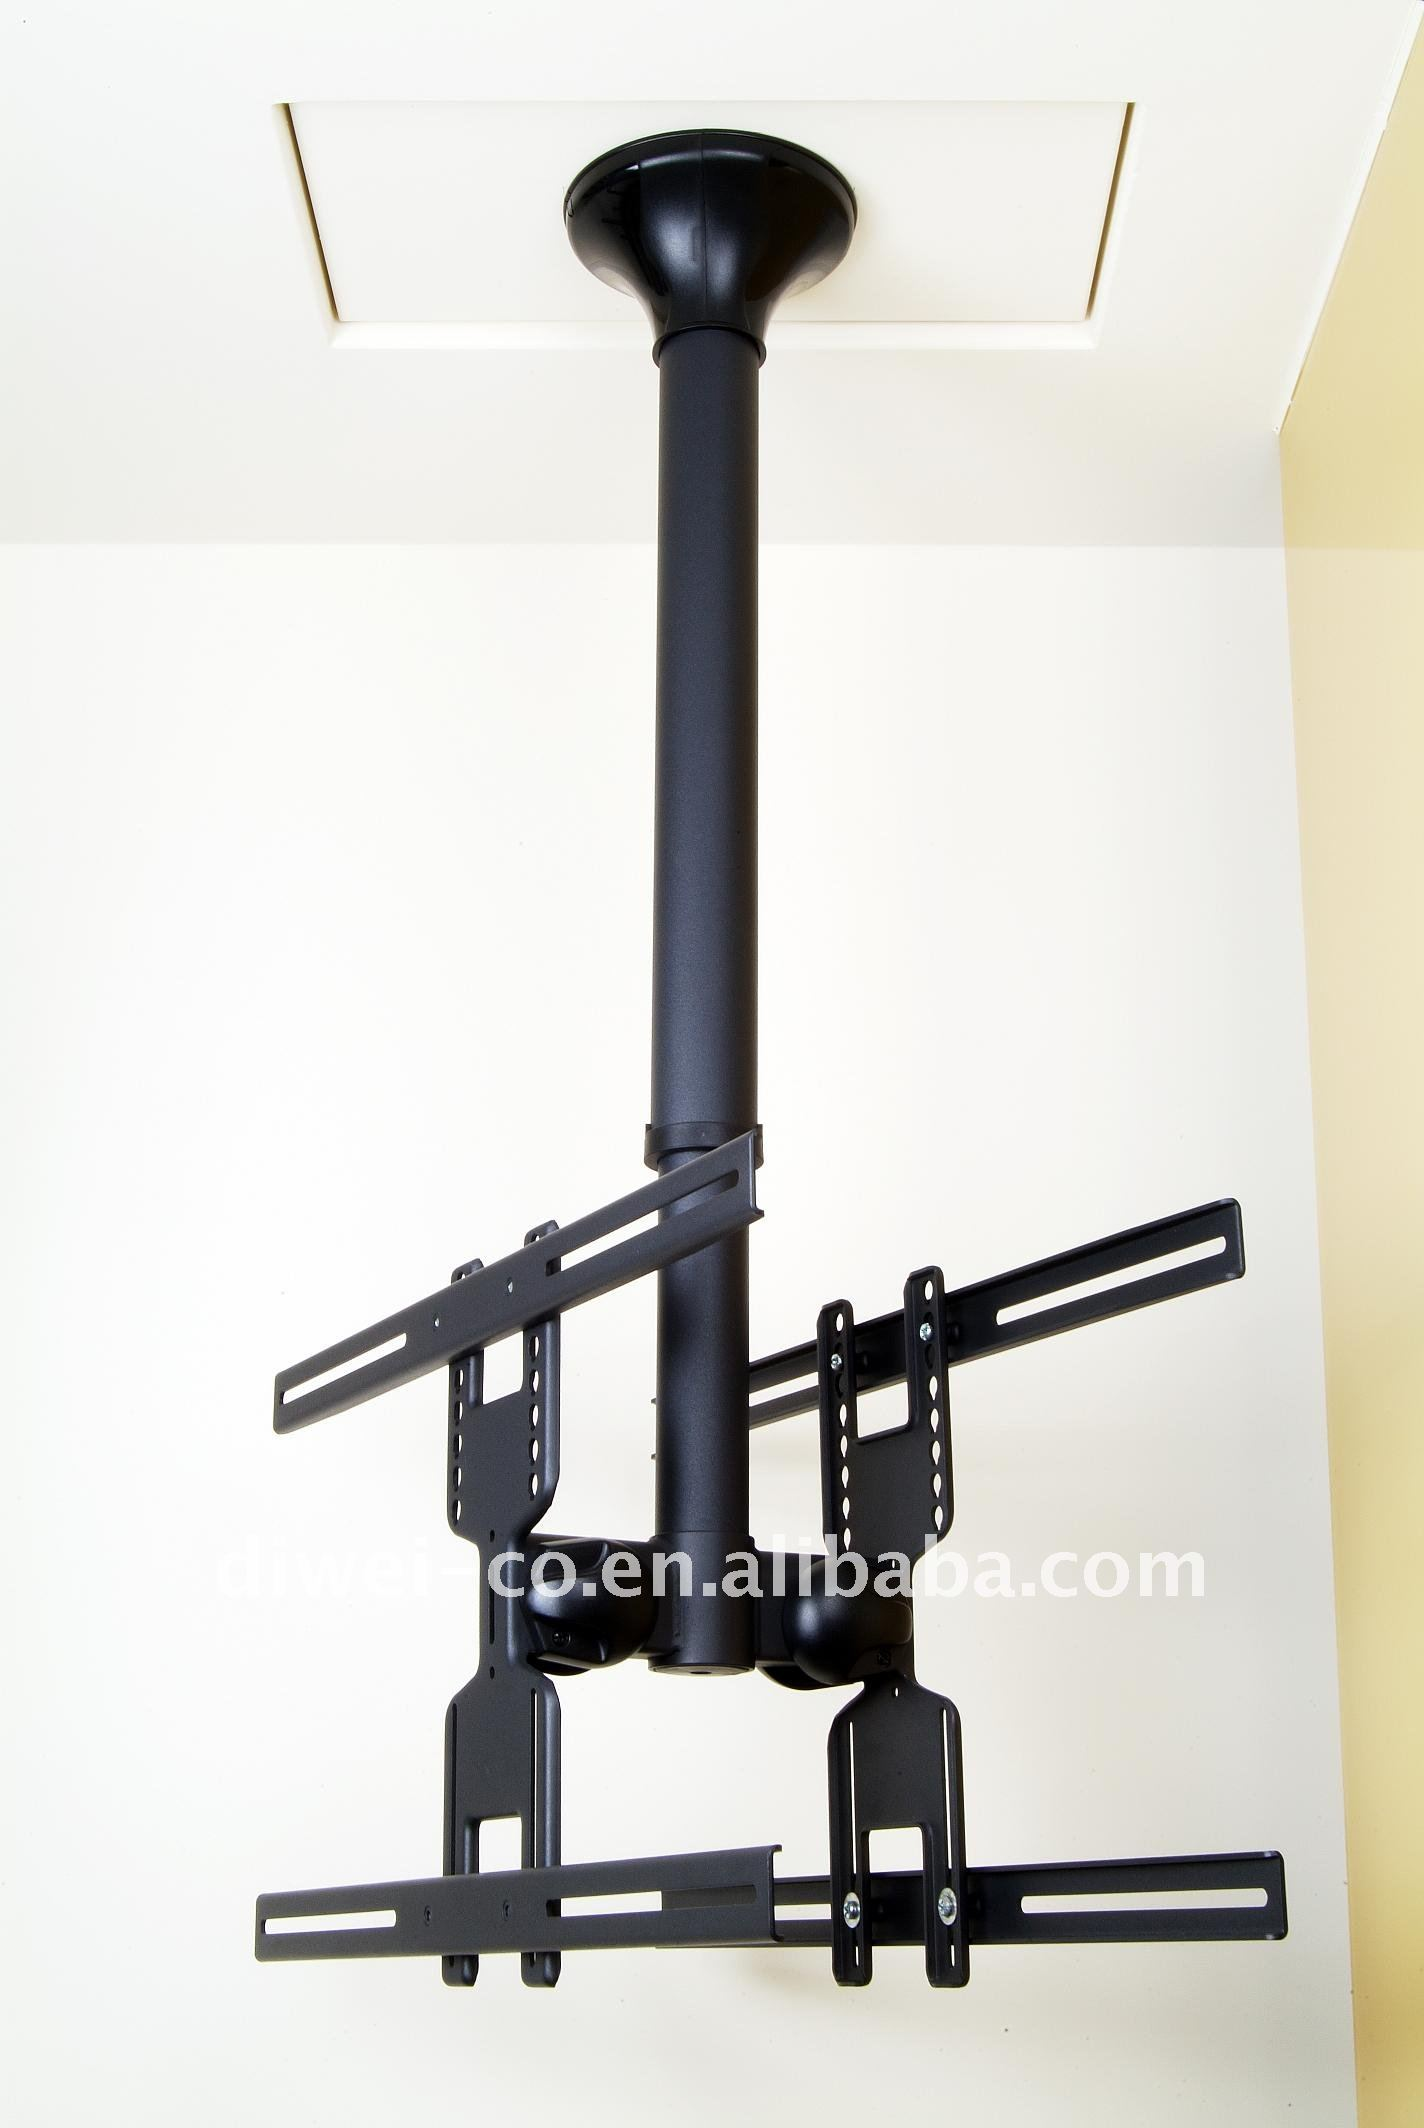 lcd tv ceiling mount bracket lcd tv ceiling mount bracket suppliers and at alibabacom - Tv Ceiling Mount